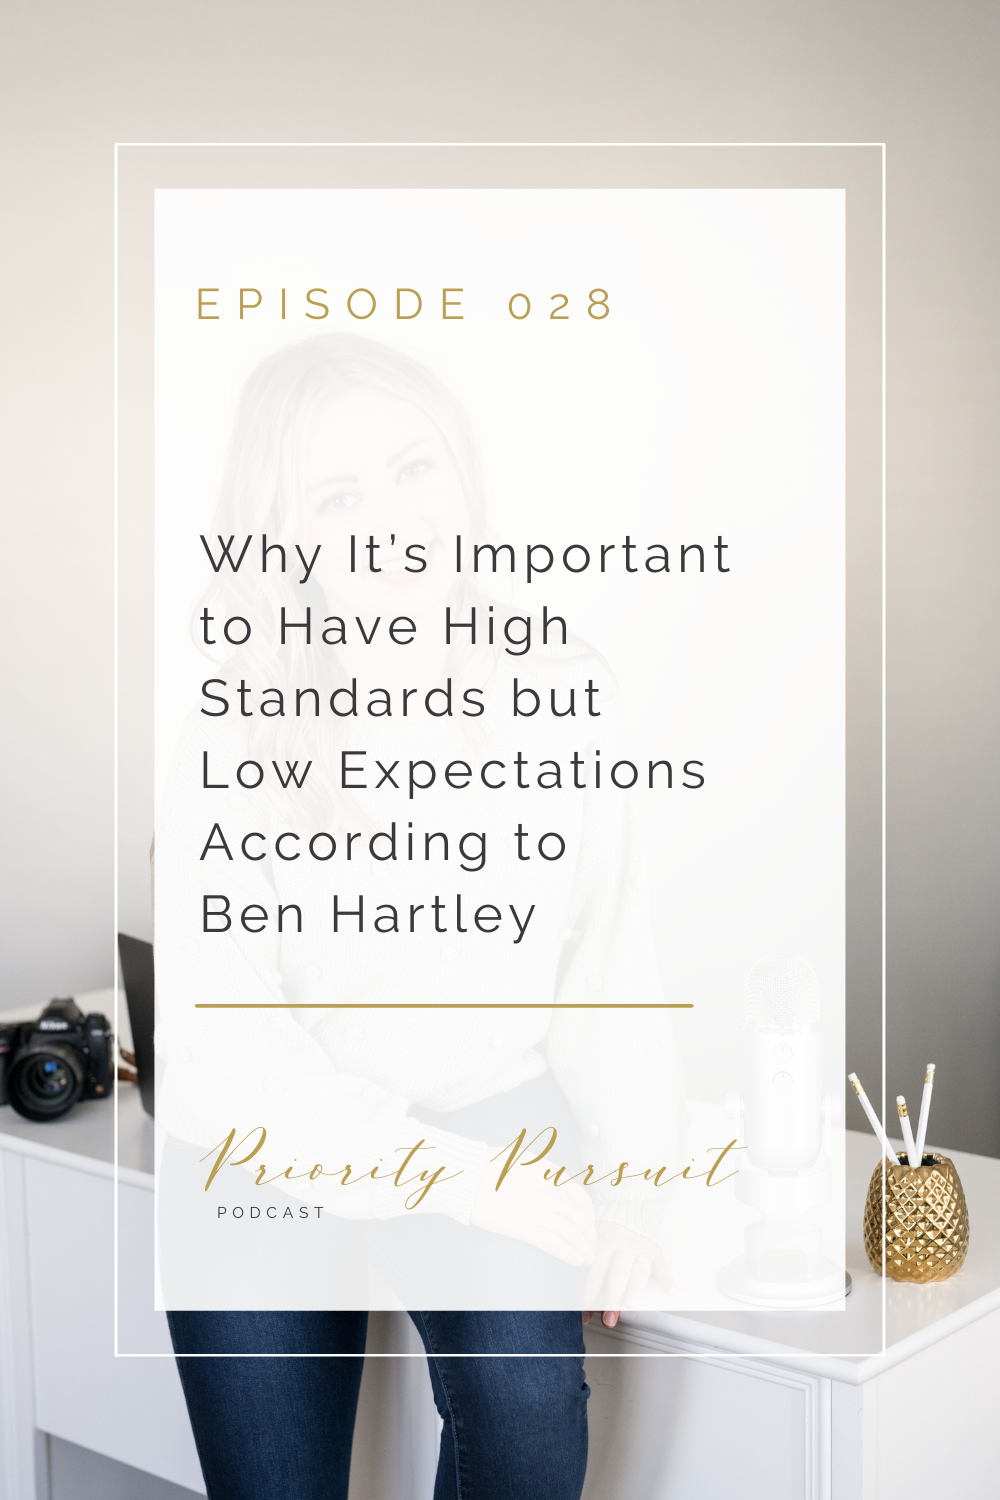 """Victoria Rayburn explains why it's important to have high standards but low expectations according to Ben Hartley in this episode of """"Priority Pursuit."""""""